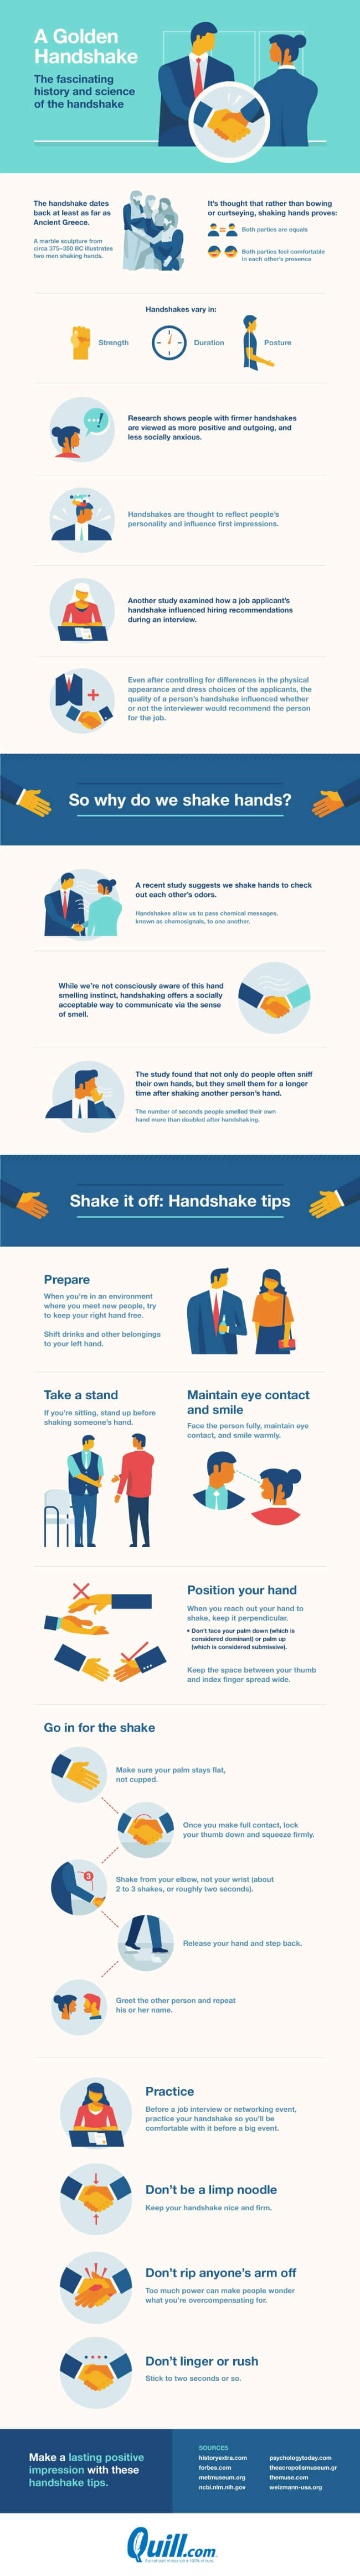 Image titled how to handshake for a lasting positive impression